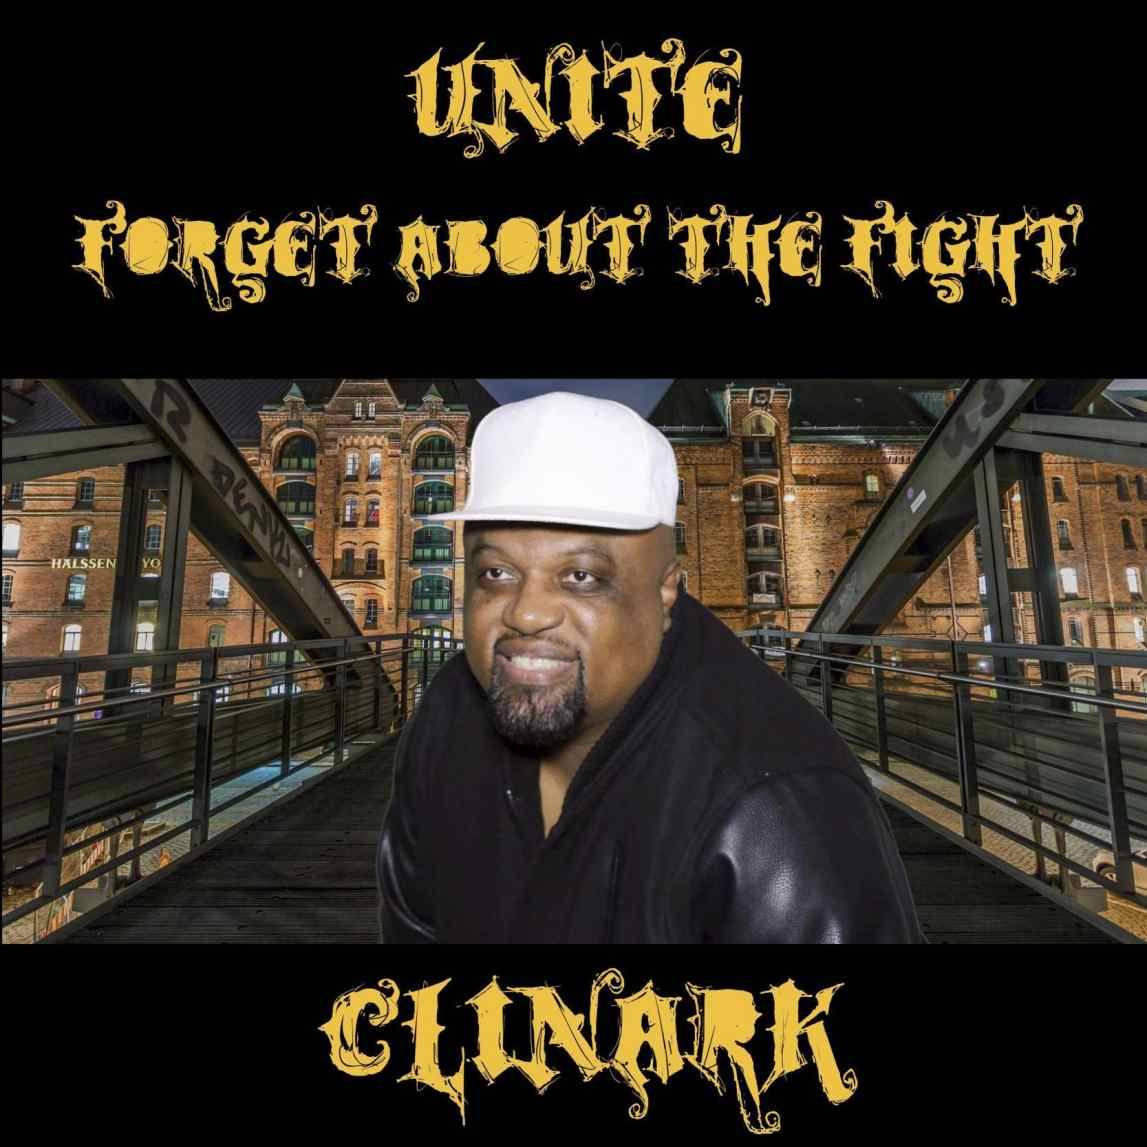 Unite Forget About The Fight by Clinark